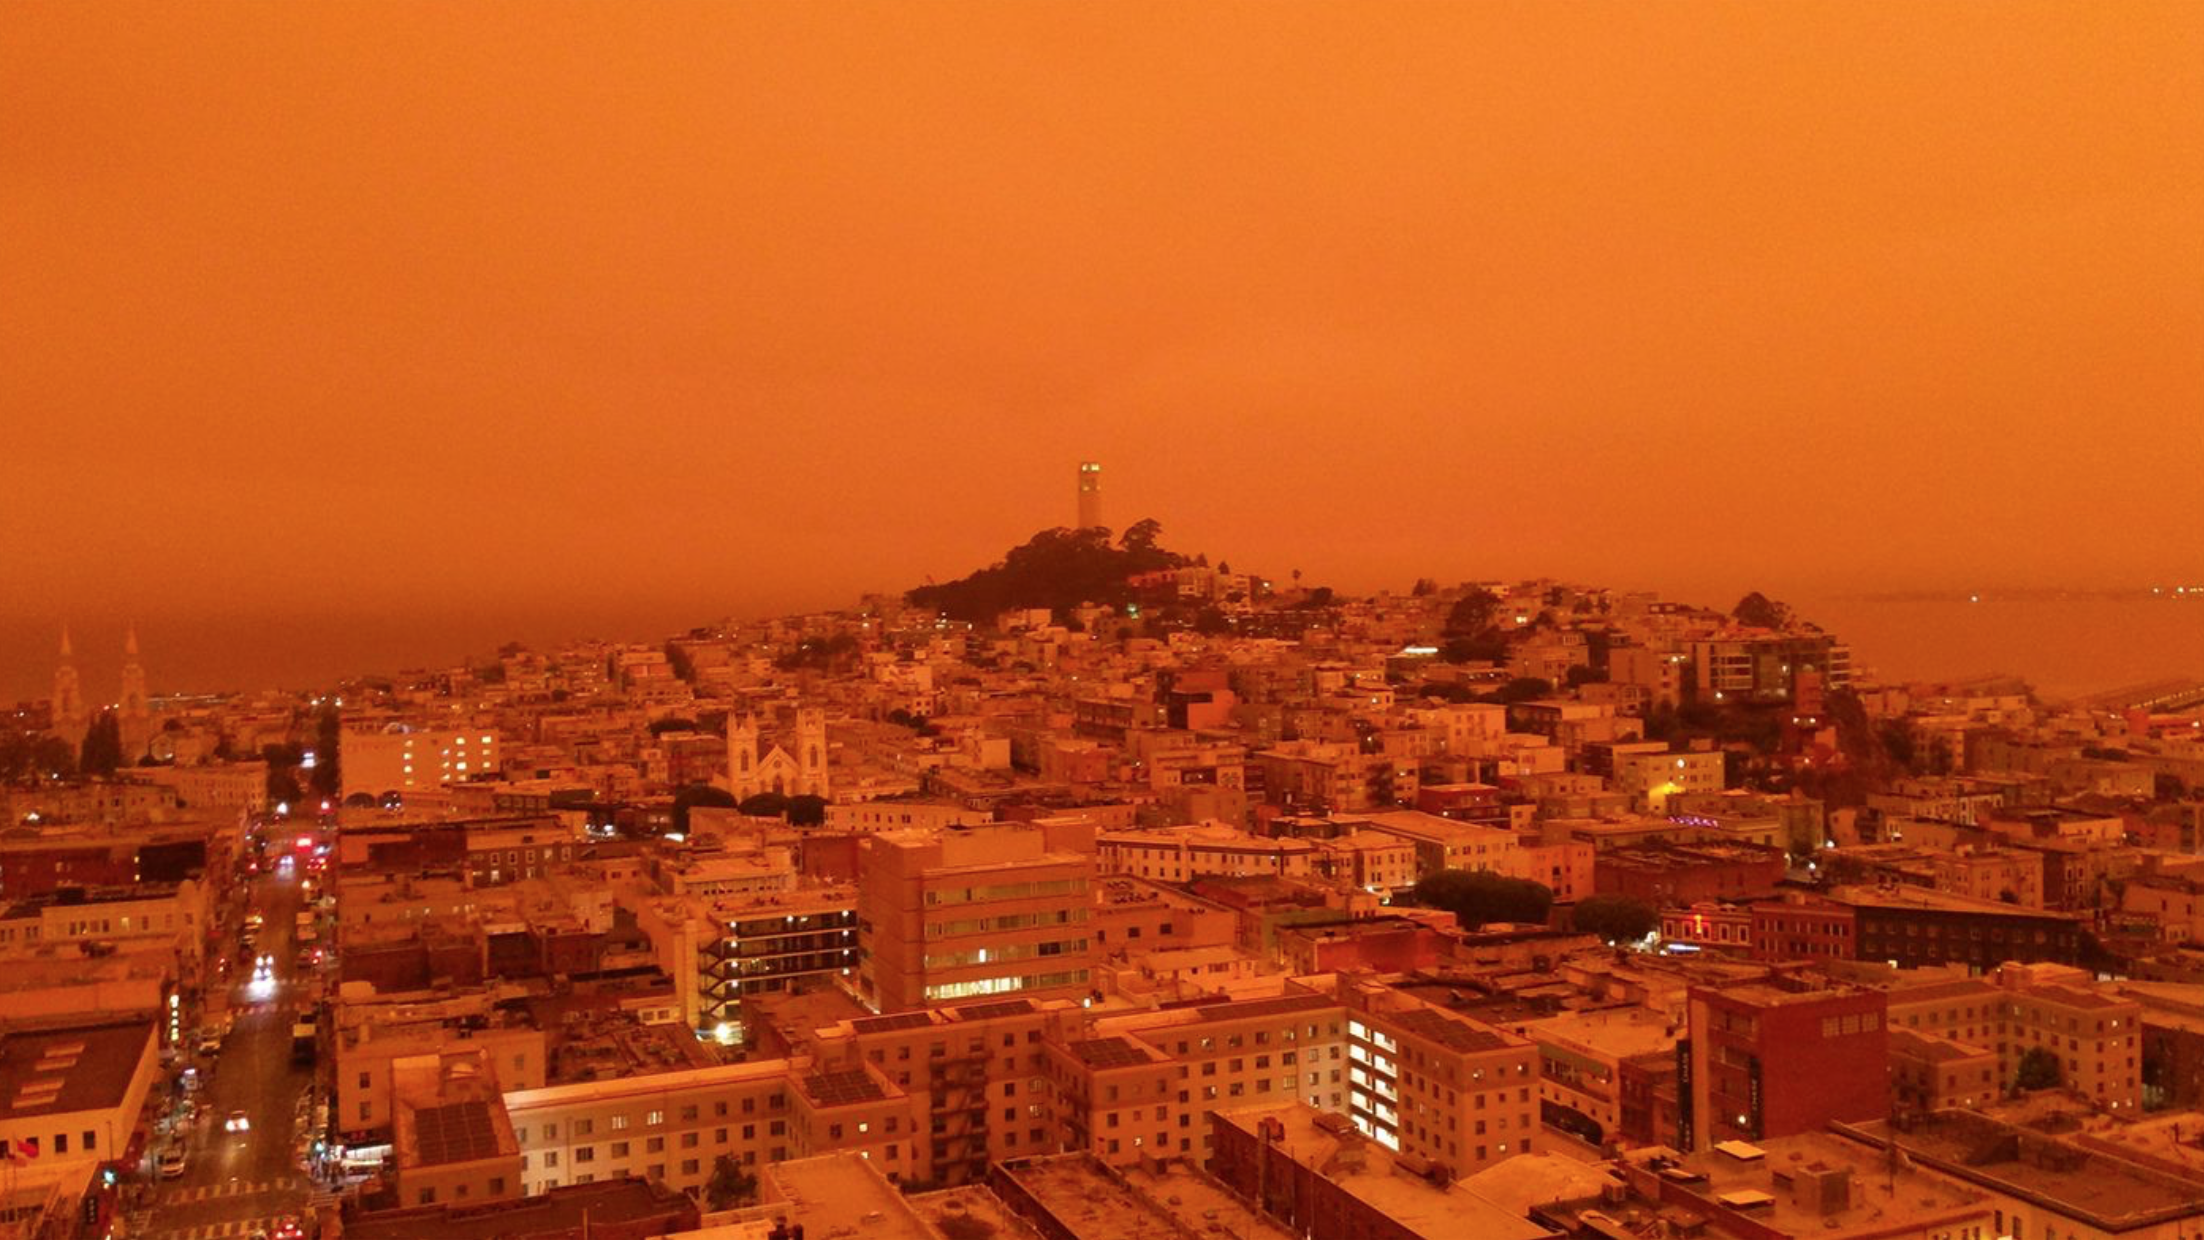 San Francisco Red Sky from the Fires